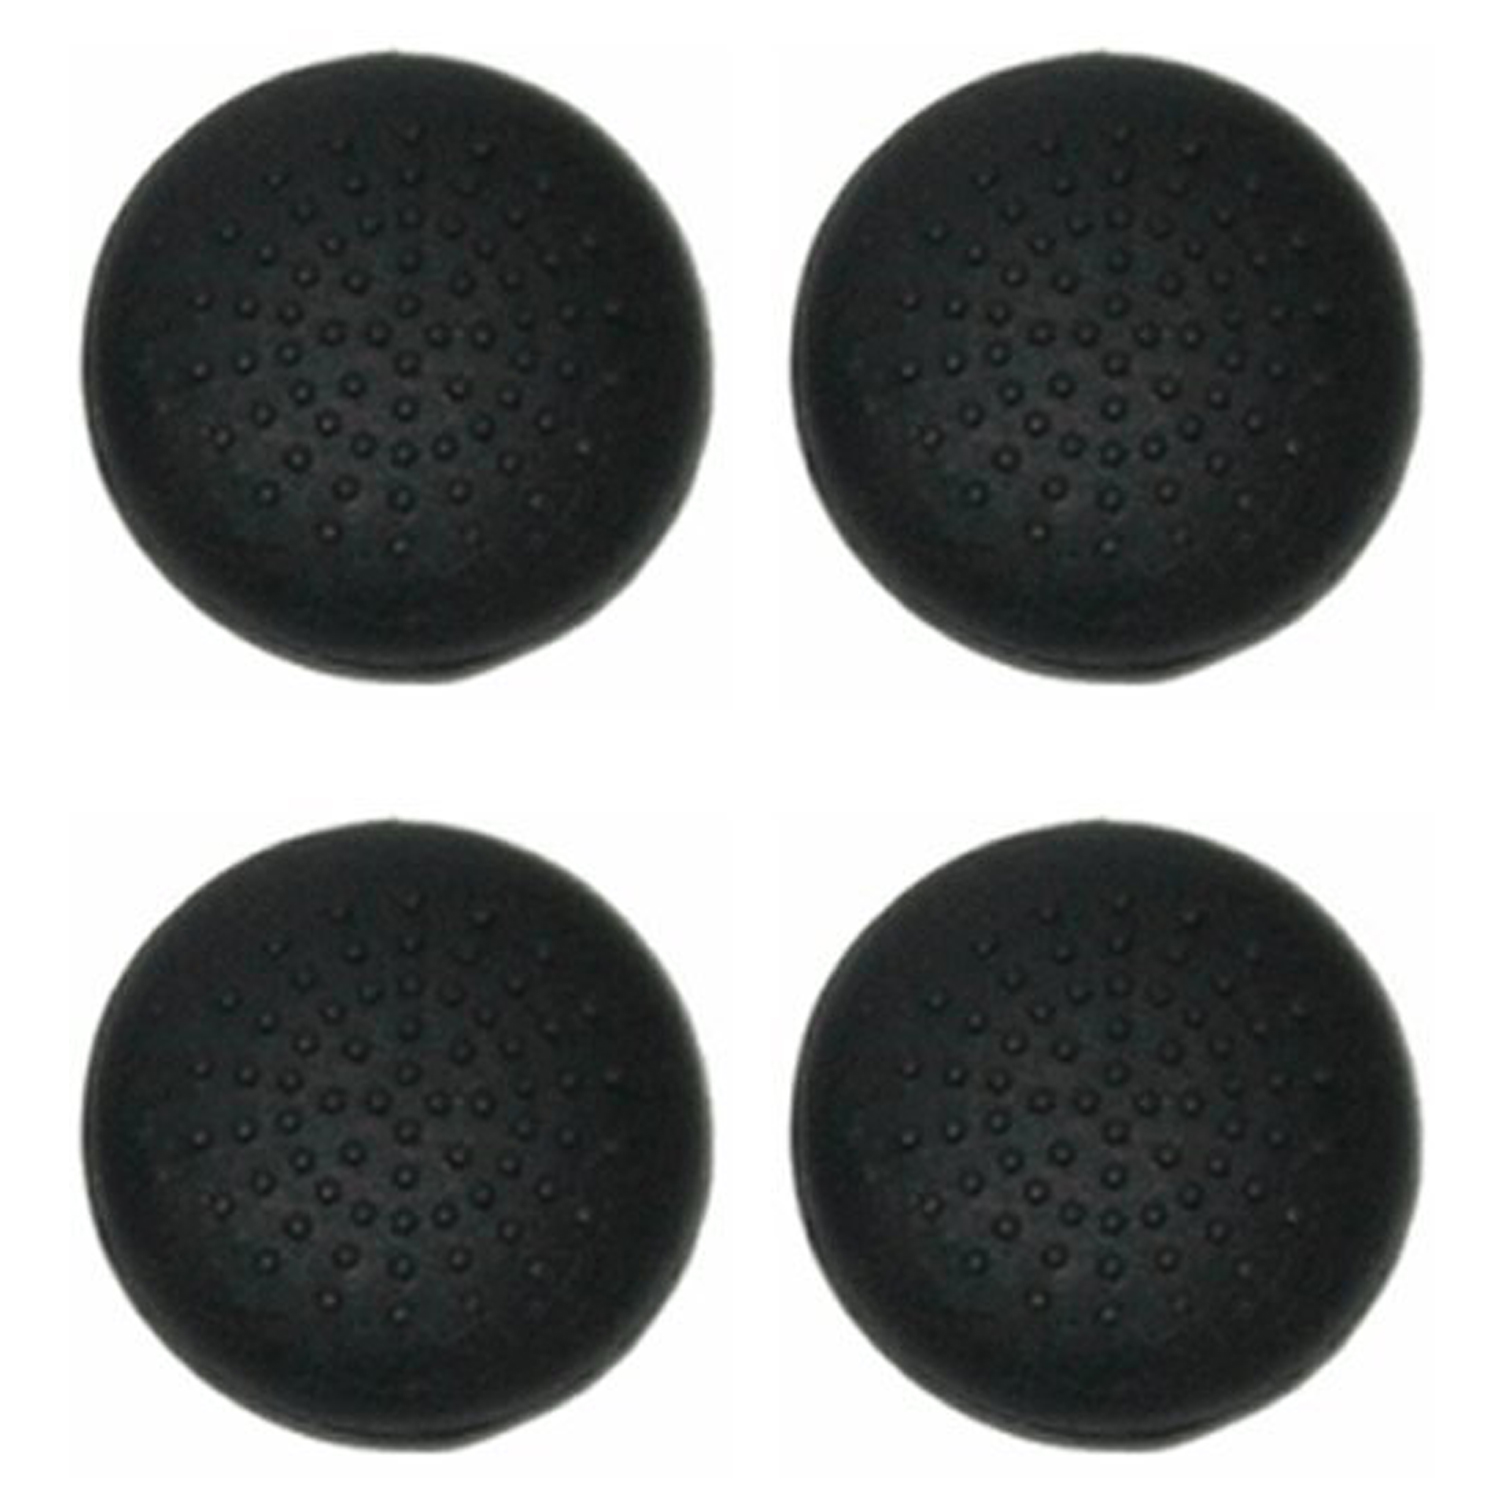 Zedlabz Dotted Convex Silicone Thumb Grips For Sony Ps4 Controllers Thumb Stick Caps - 4 Pack Black